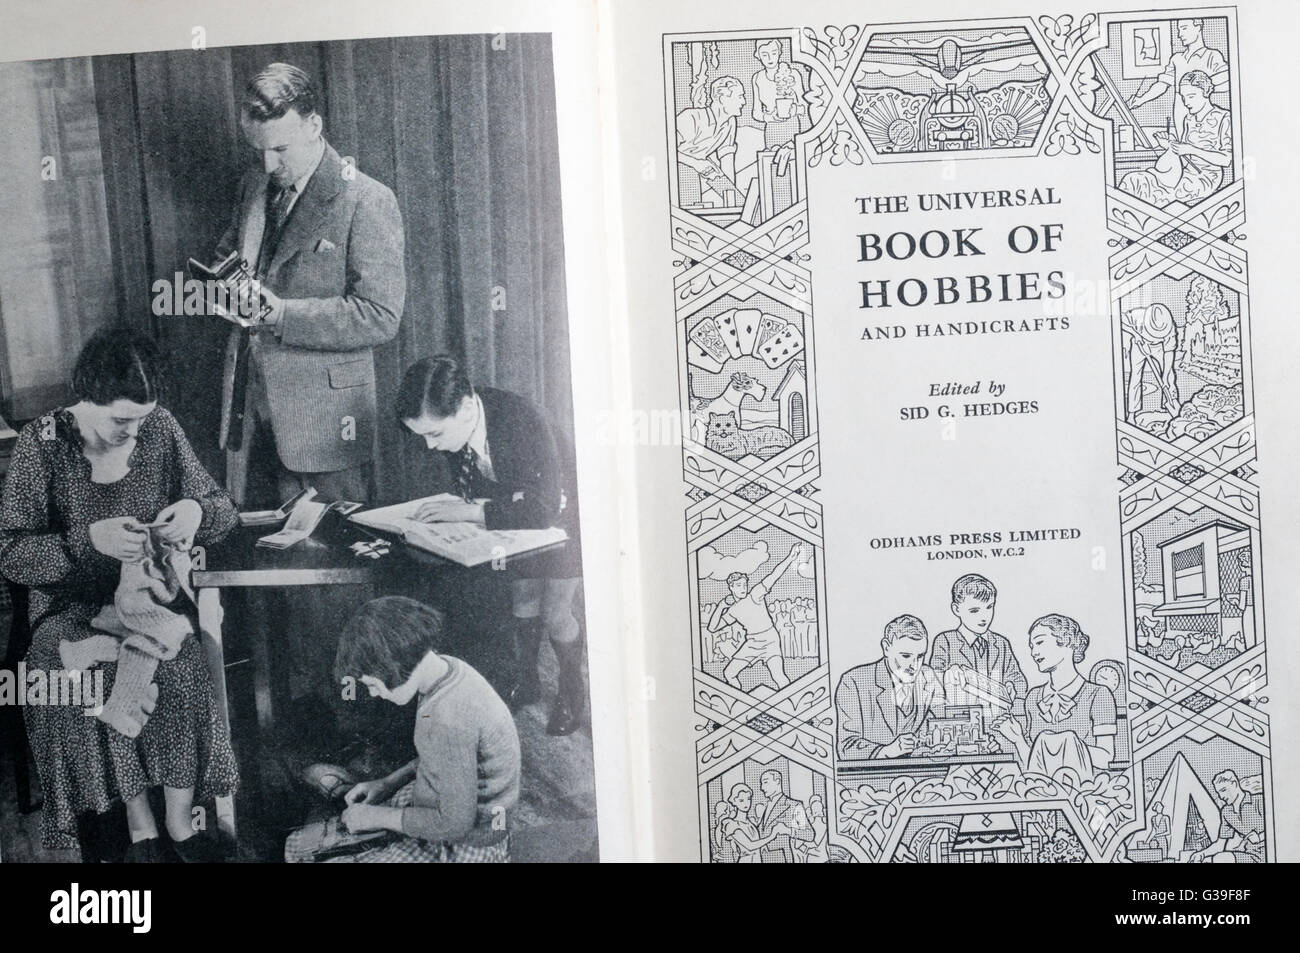 The Universal Book of Hobbies and Handicrafts edited by Sid Hedges and published by Odhams Press in 1930s or 1940s. - Stock Image